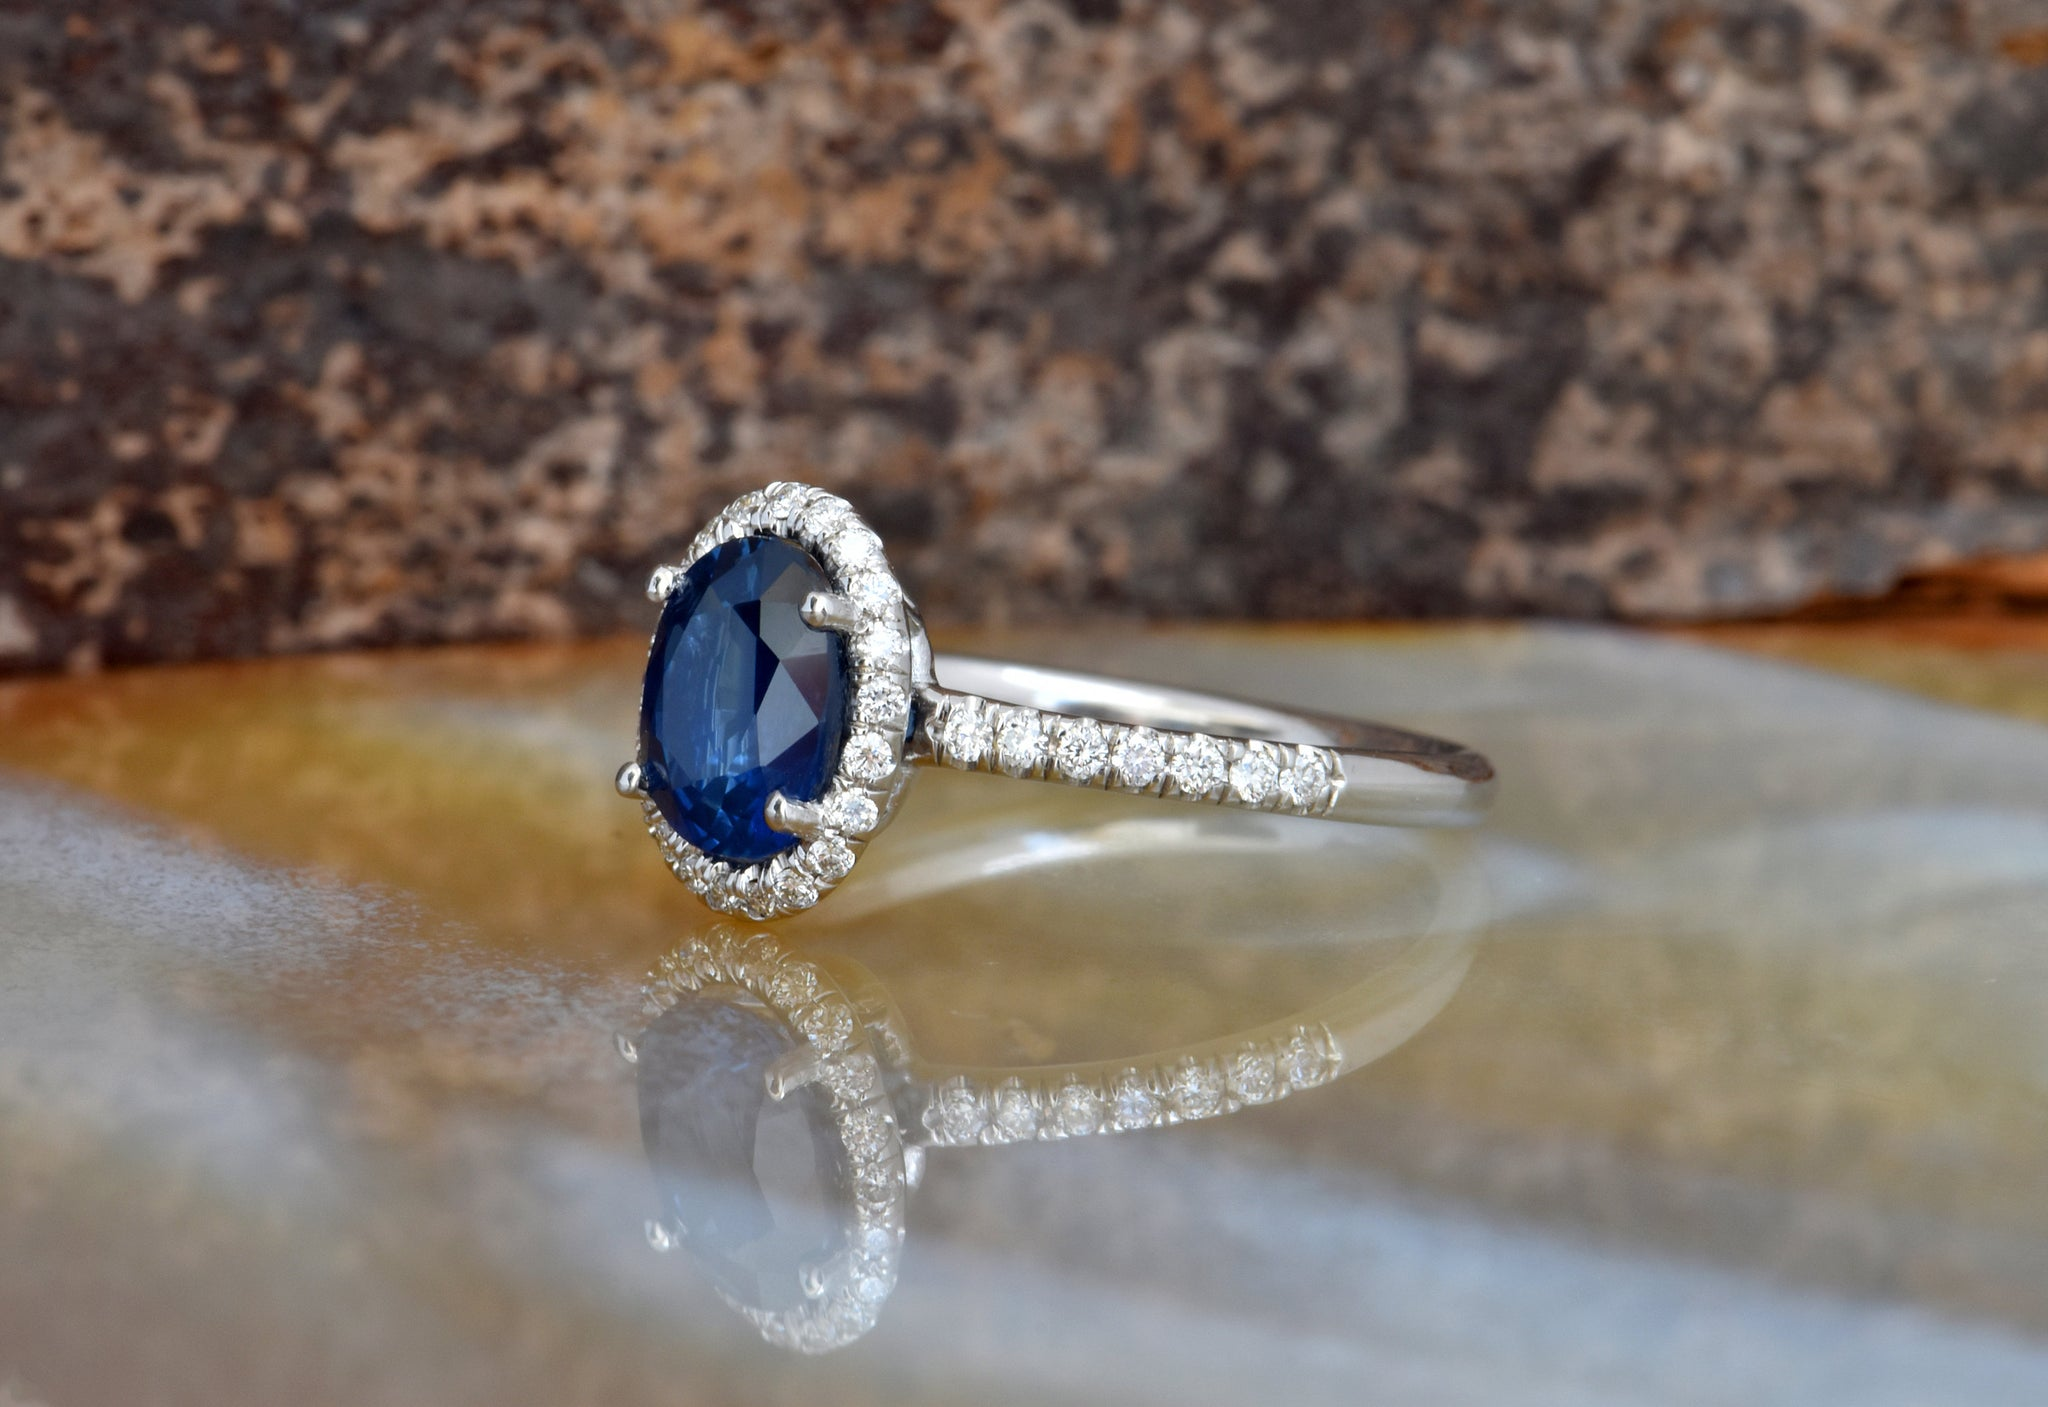 Diamond ring with Sapphire-Cluster Engagement ring-1ct Blue Sapphire-Engagement Ring-Gold ring